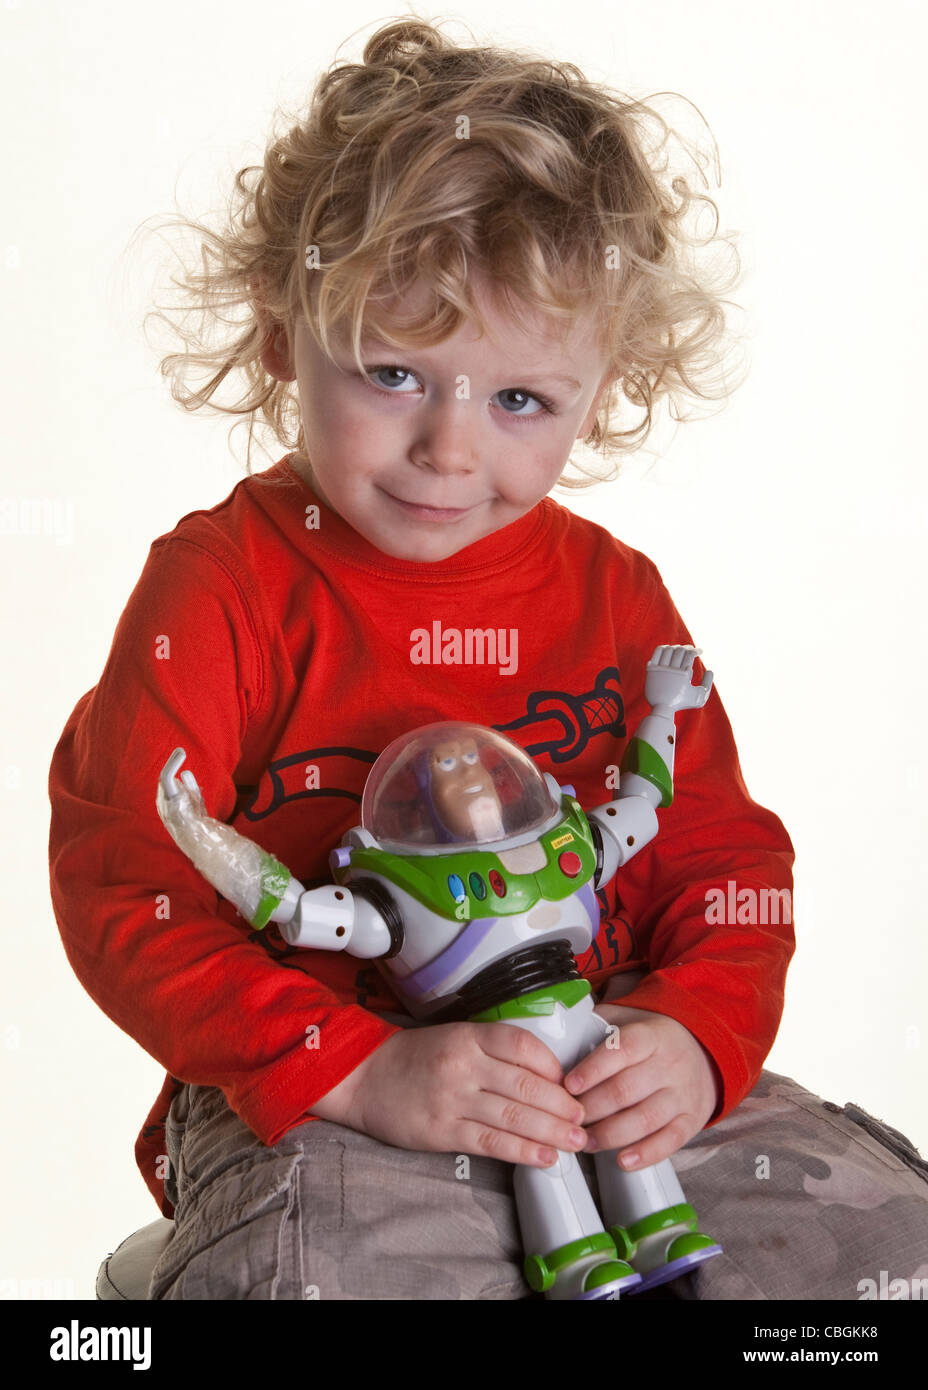 young boy with buzz lightyear toy - Stock Image